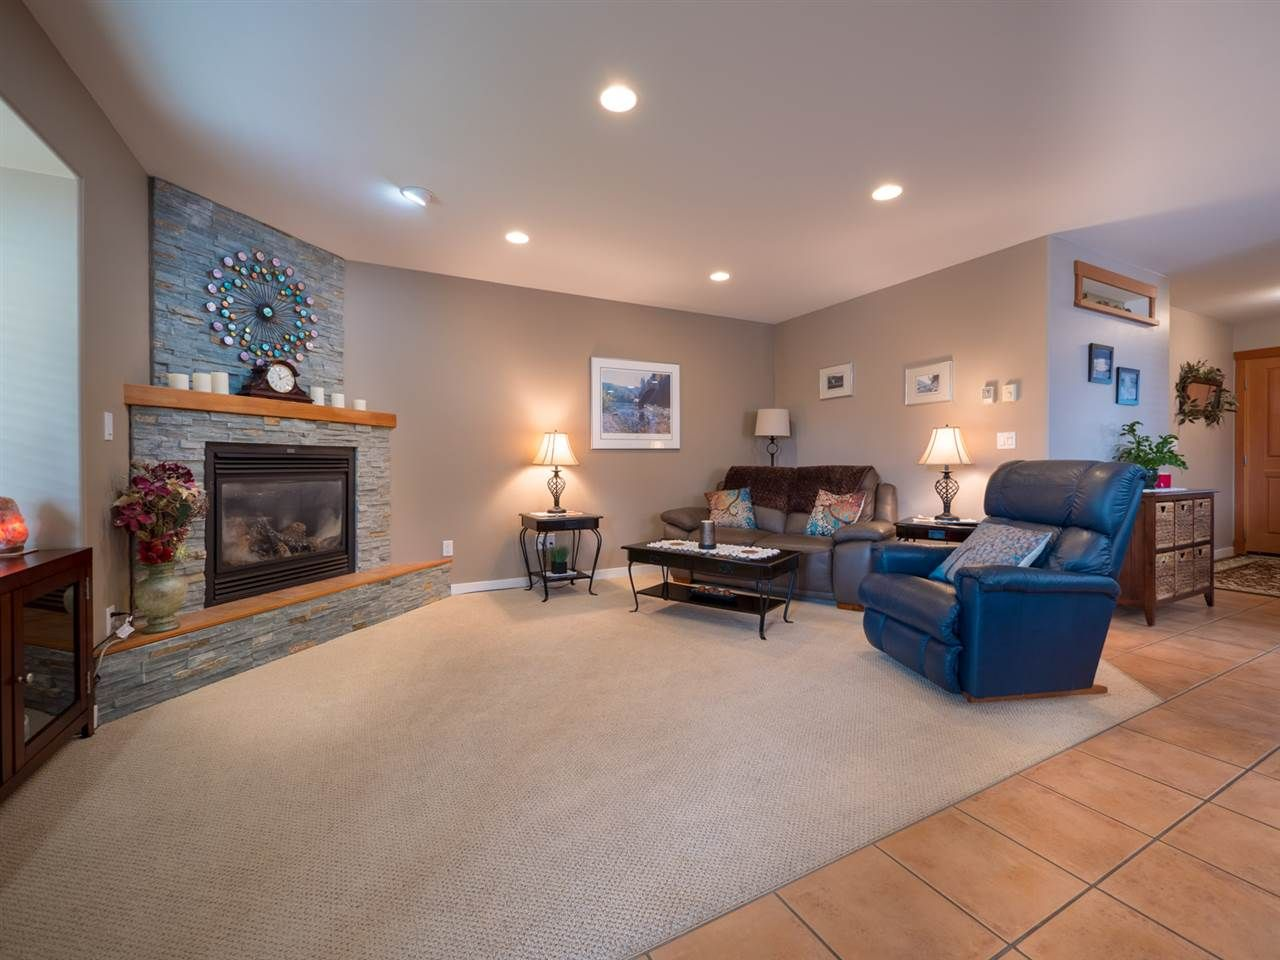 Photo 3: Photos: 6335 PICADILLY Place in Sechelt: Sechelt District House for sale (Sunshine Coast)  : MLS®# R2248834